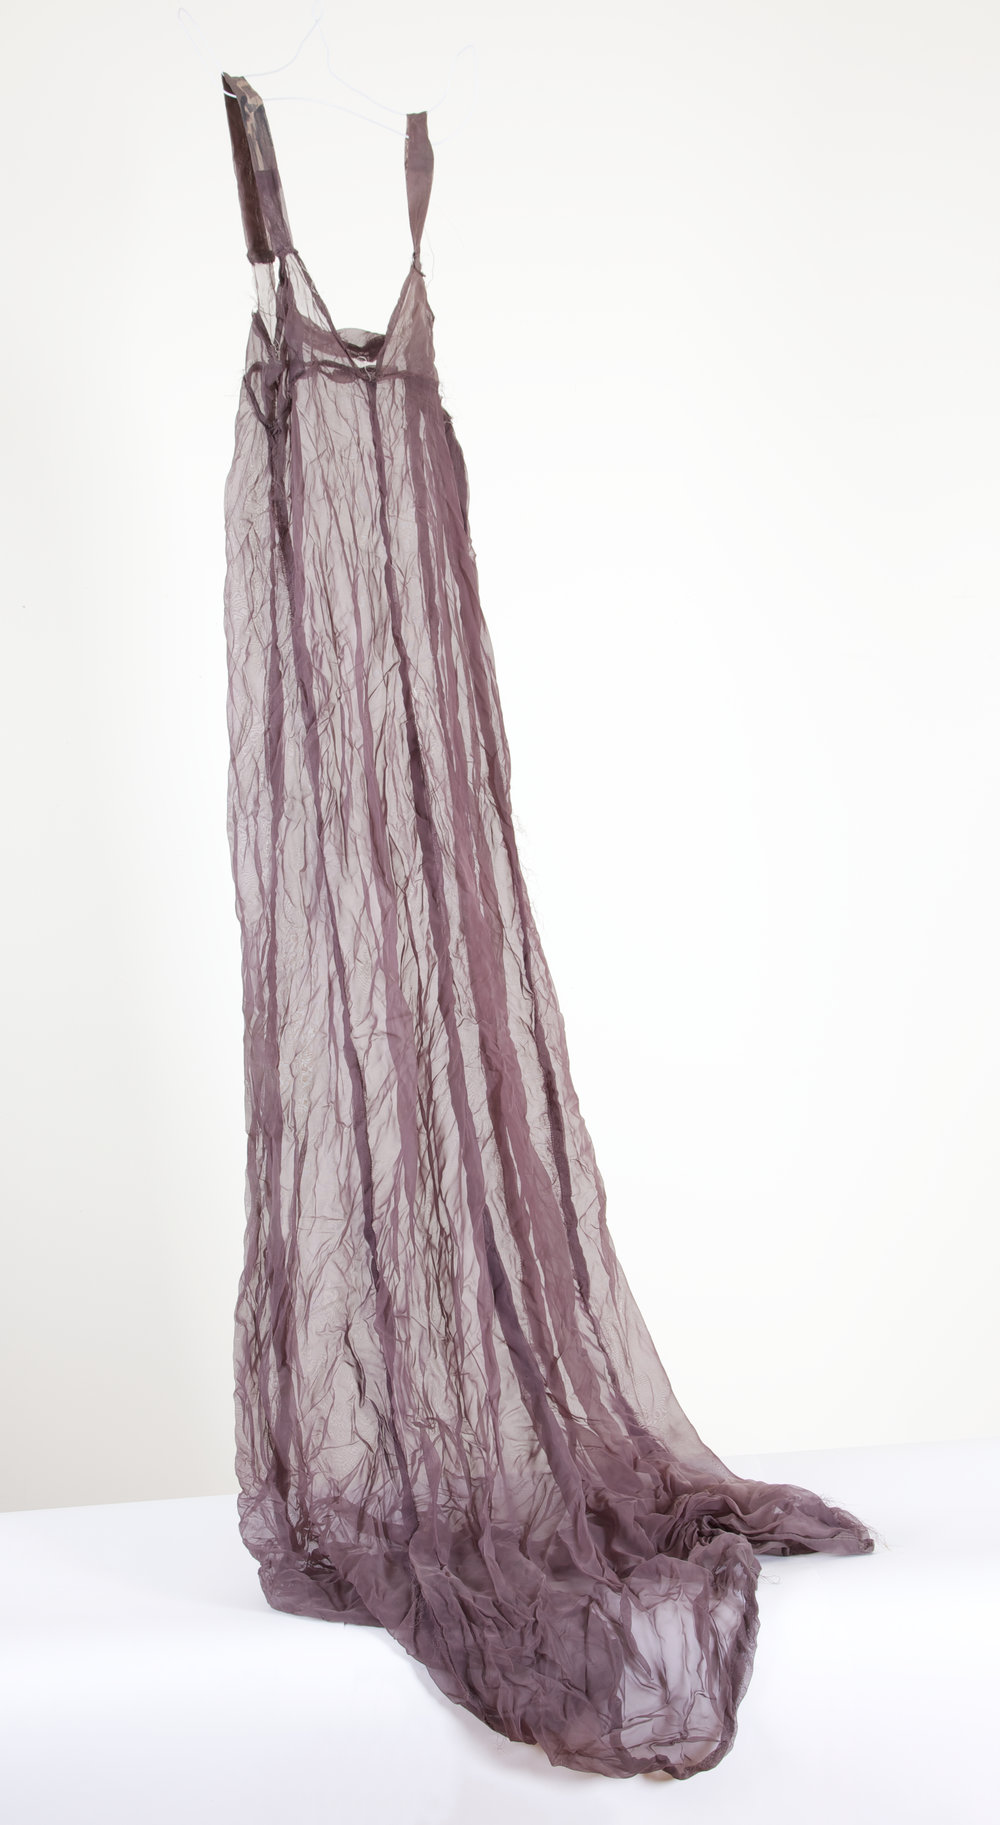 Negligee gown. 2010  Dyed polyester organza. This cloth was purchased for the 2006 installation, The Conversation, and never used.  Dyeing polyester is a nasty experience.